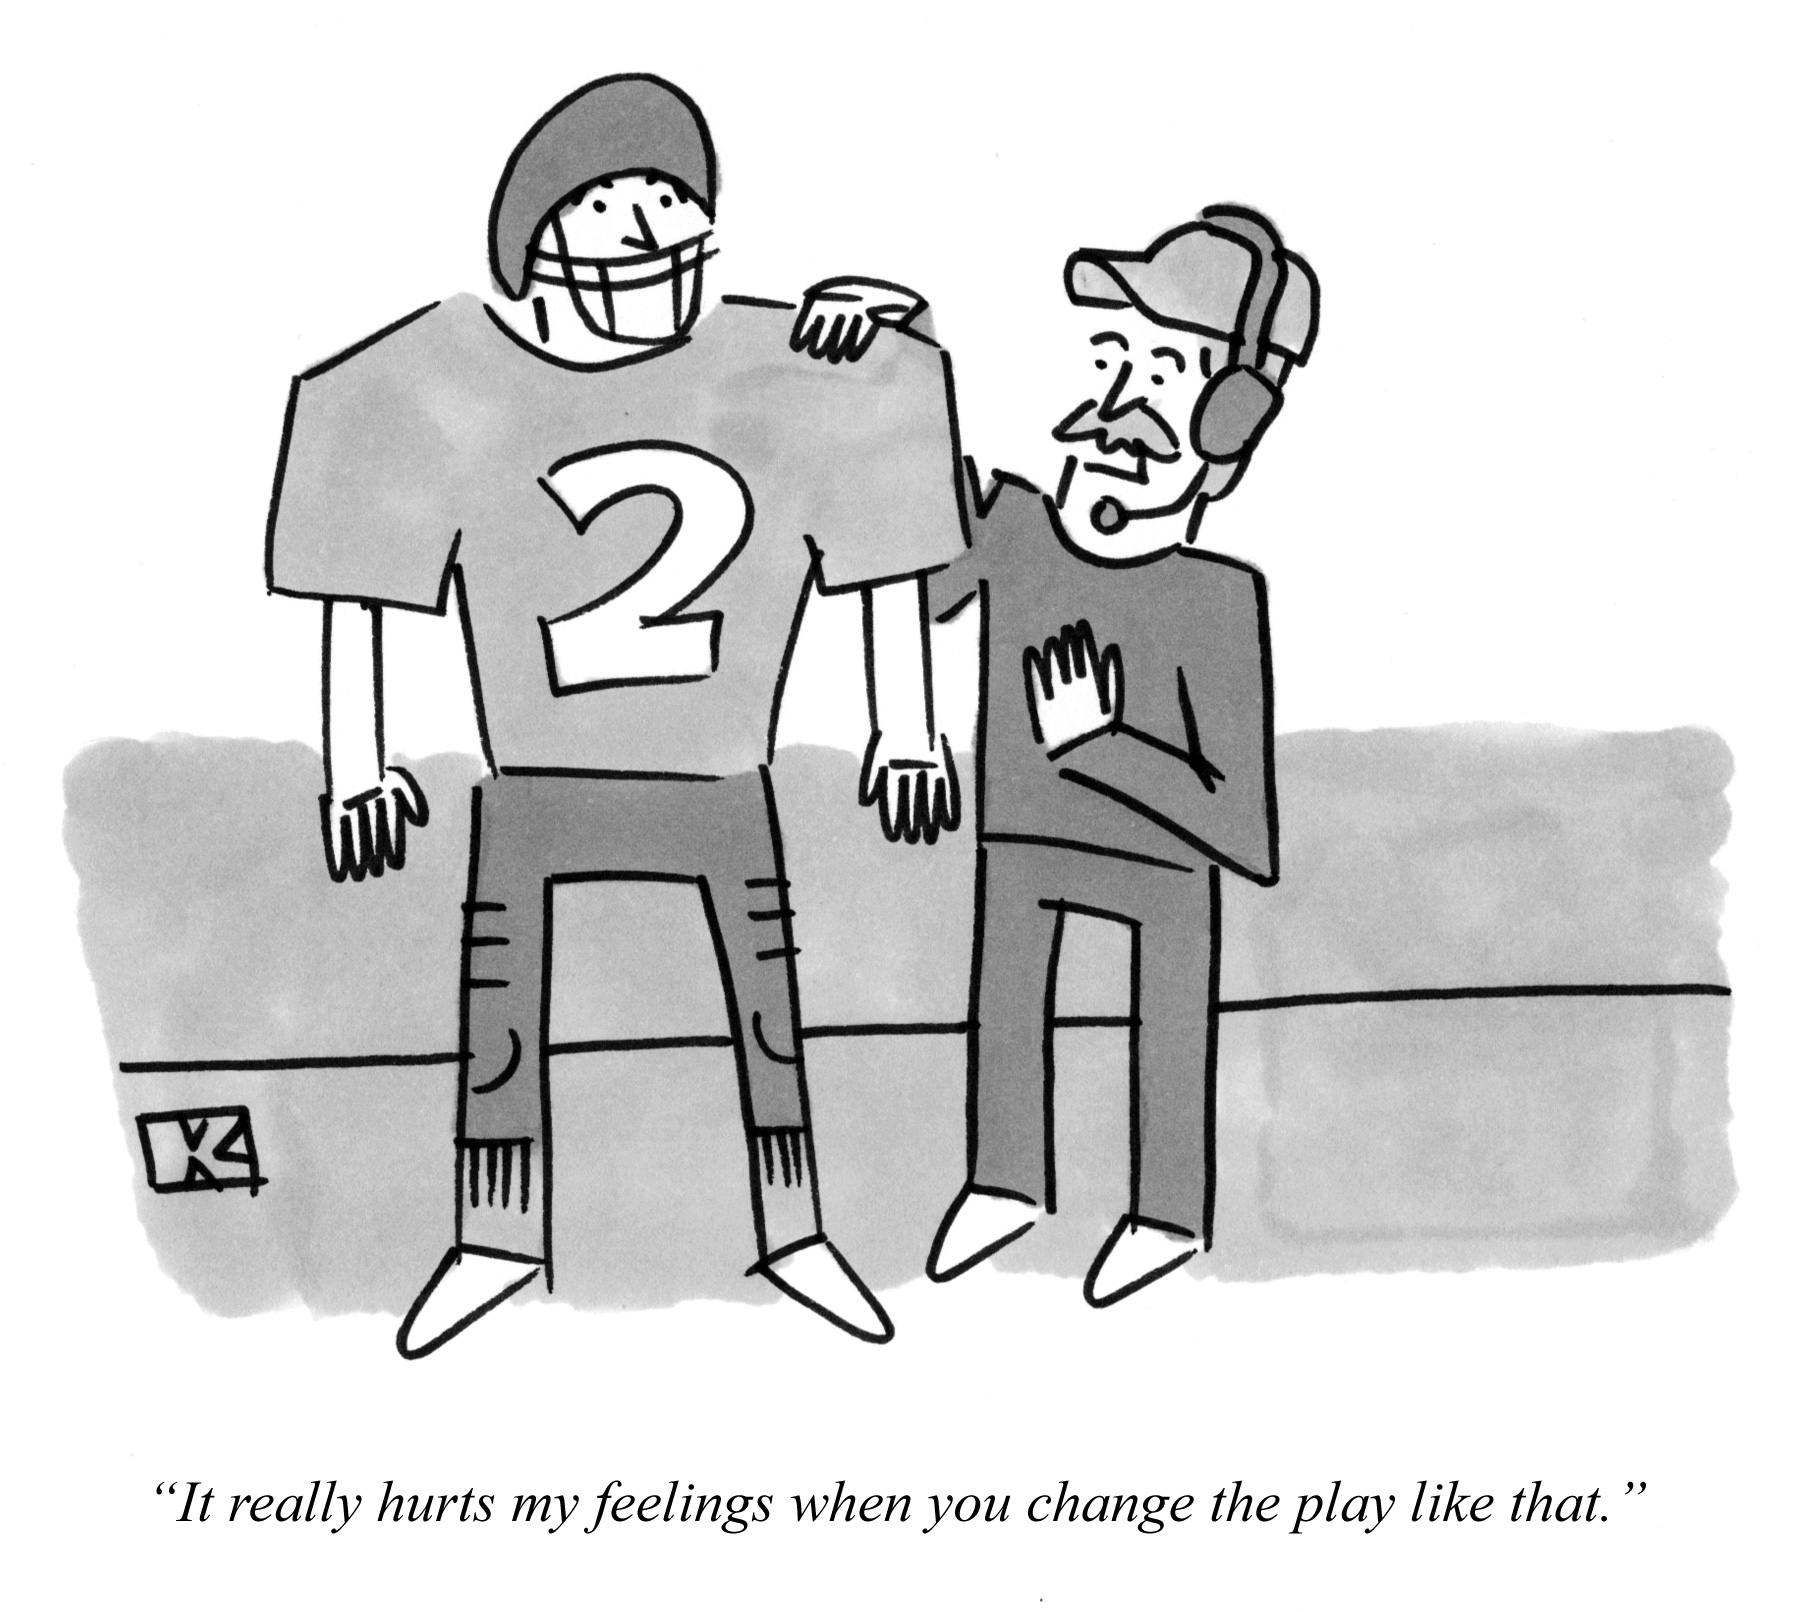 It really hurts my feelings when you change the play like that.